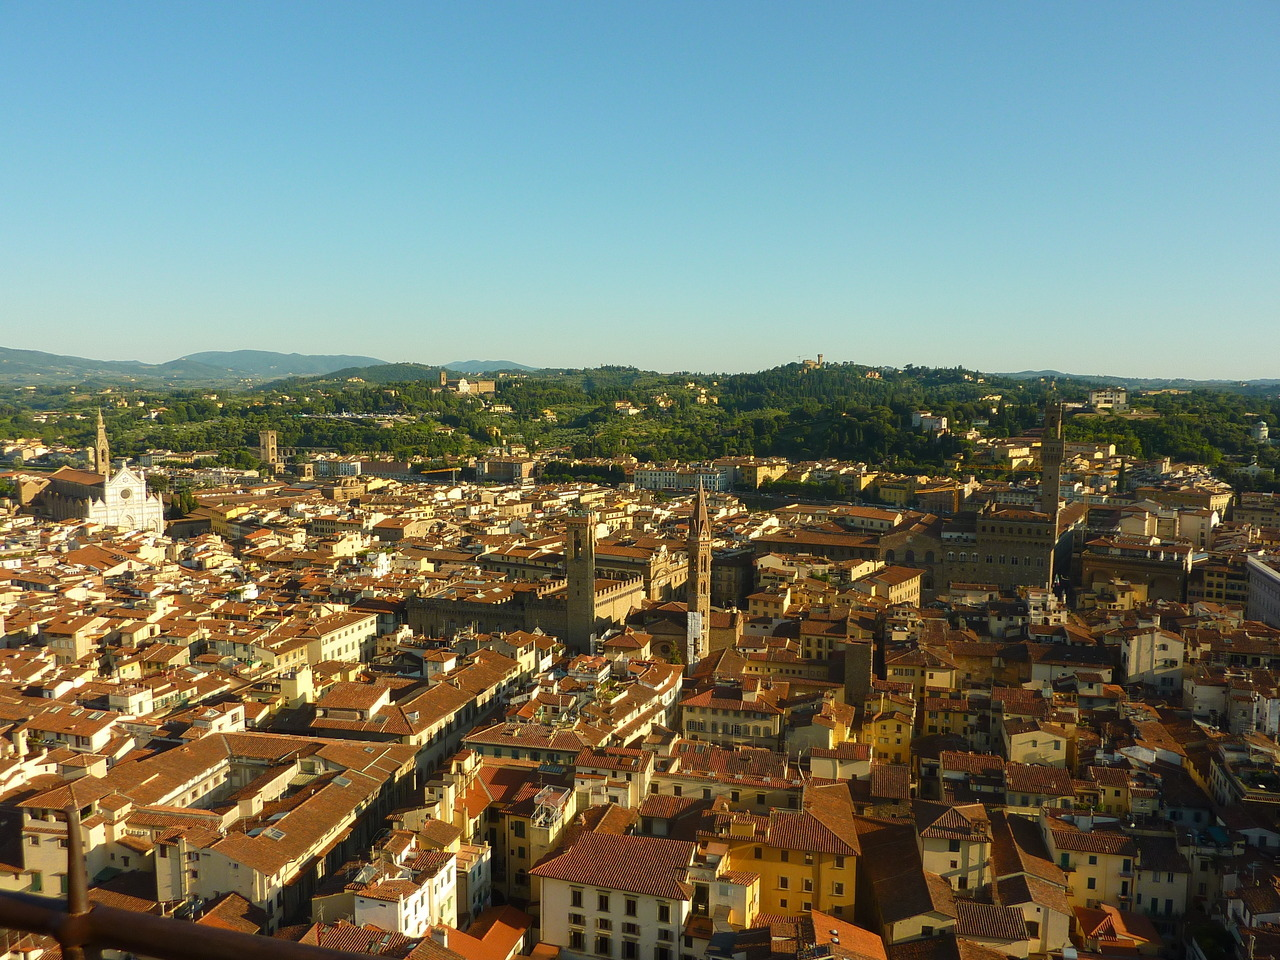 Panorama from El Duomo - Firenze, Italia by D. Caro